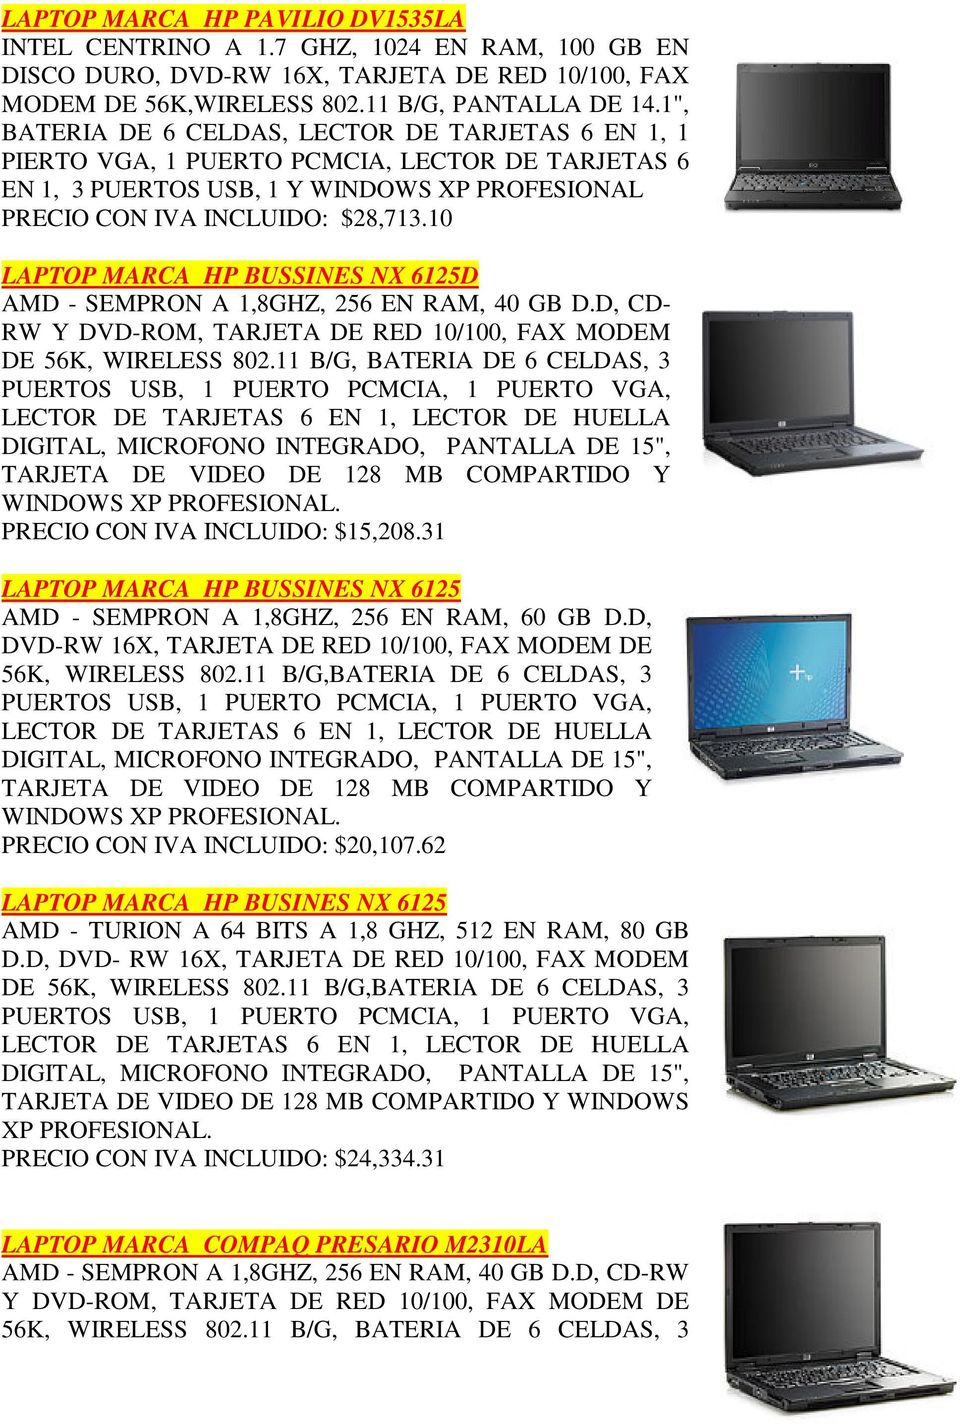 10 LAPTOP MARCA HP BUSSINES NX 6125D AMD - SEMPRON A 1,8GHZ, 256 EN RAM, 40 GB D.D, CD- RW Y DVD-ROM, TARJETA DE RED 10/100, FAX MODEM DE 56K, WIRELESS 802.